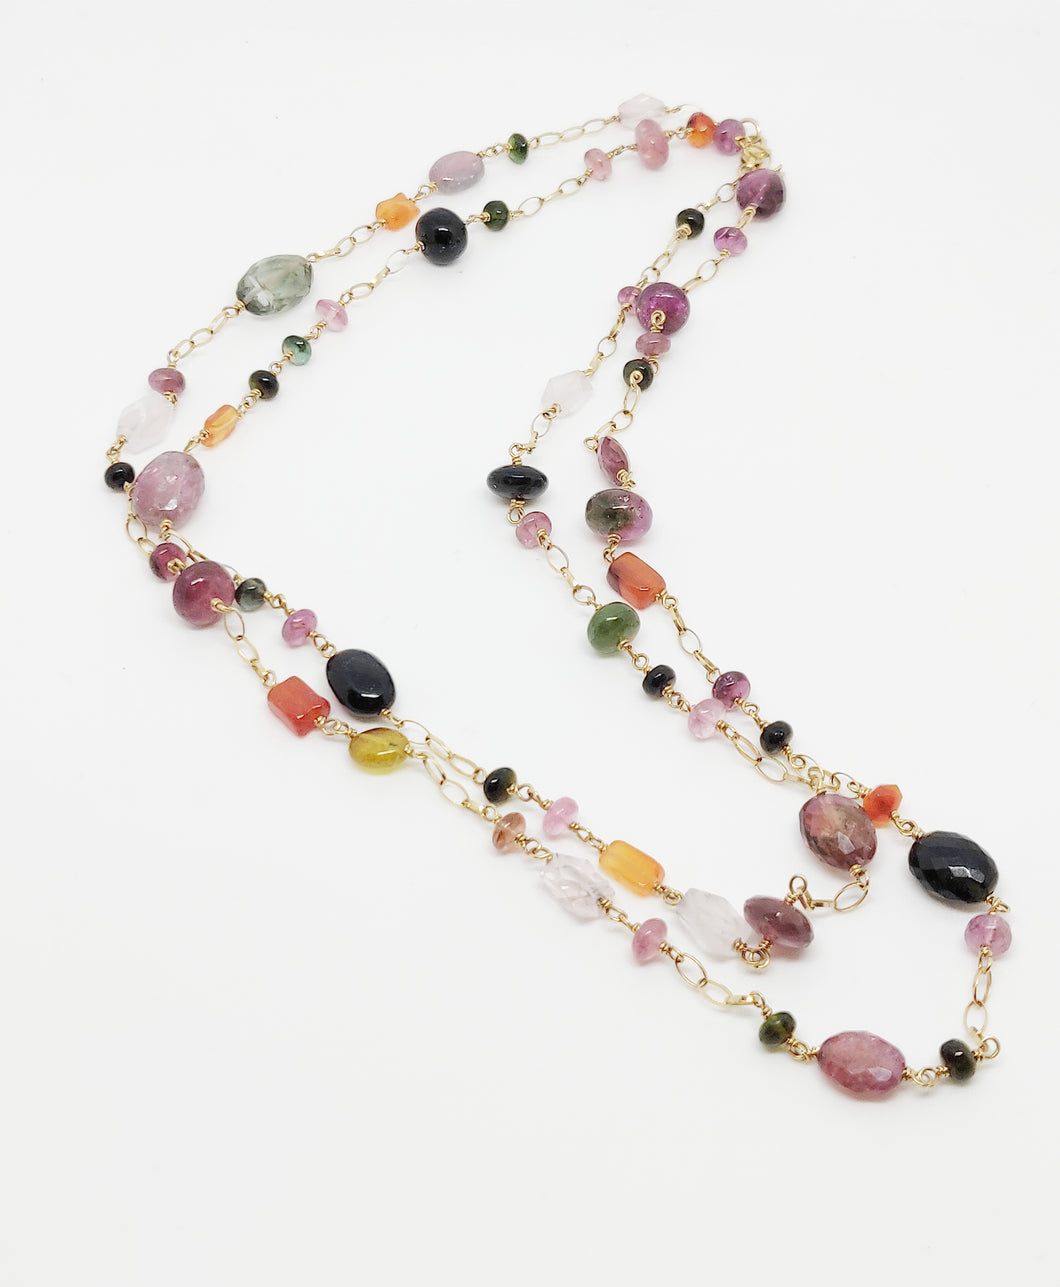 Gold and tourmaline necklace